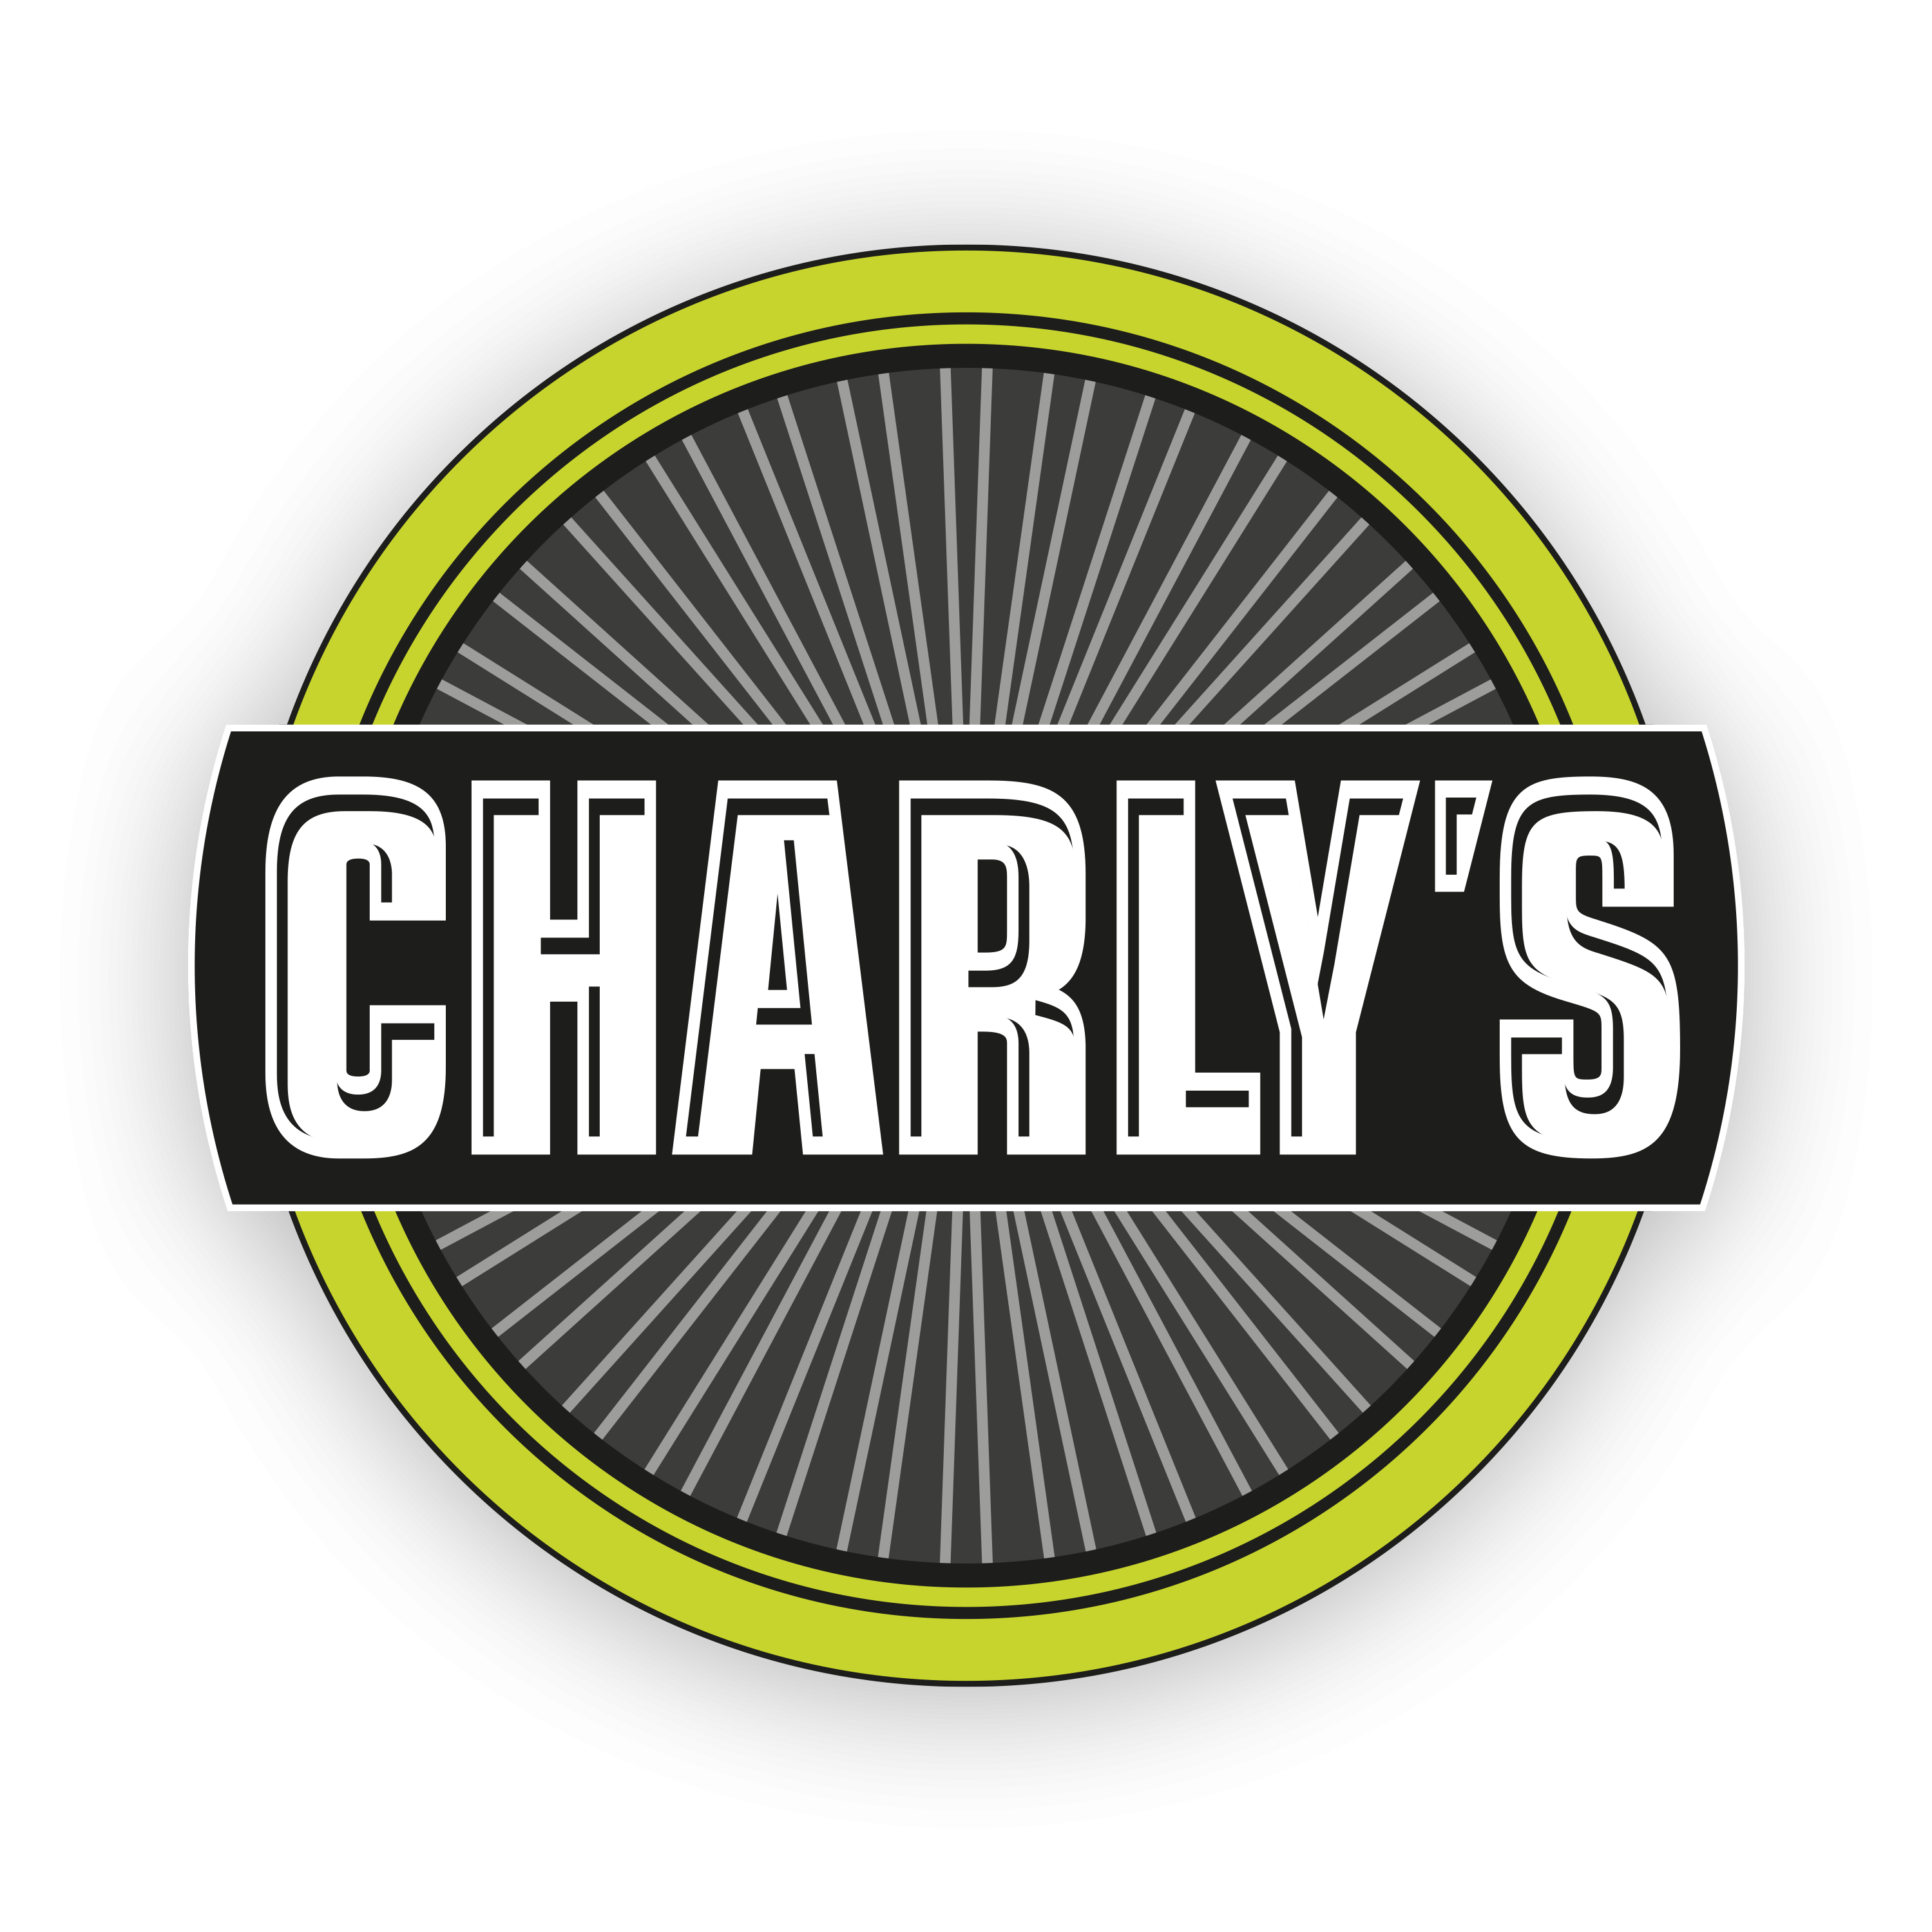 cropped-cropped-Charly-Logo-schatten-2-2-1.png